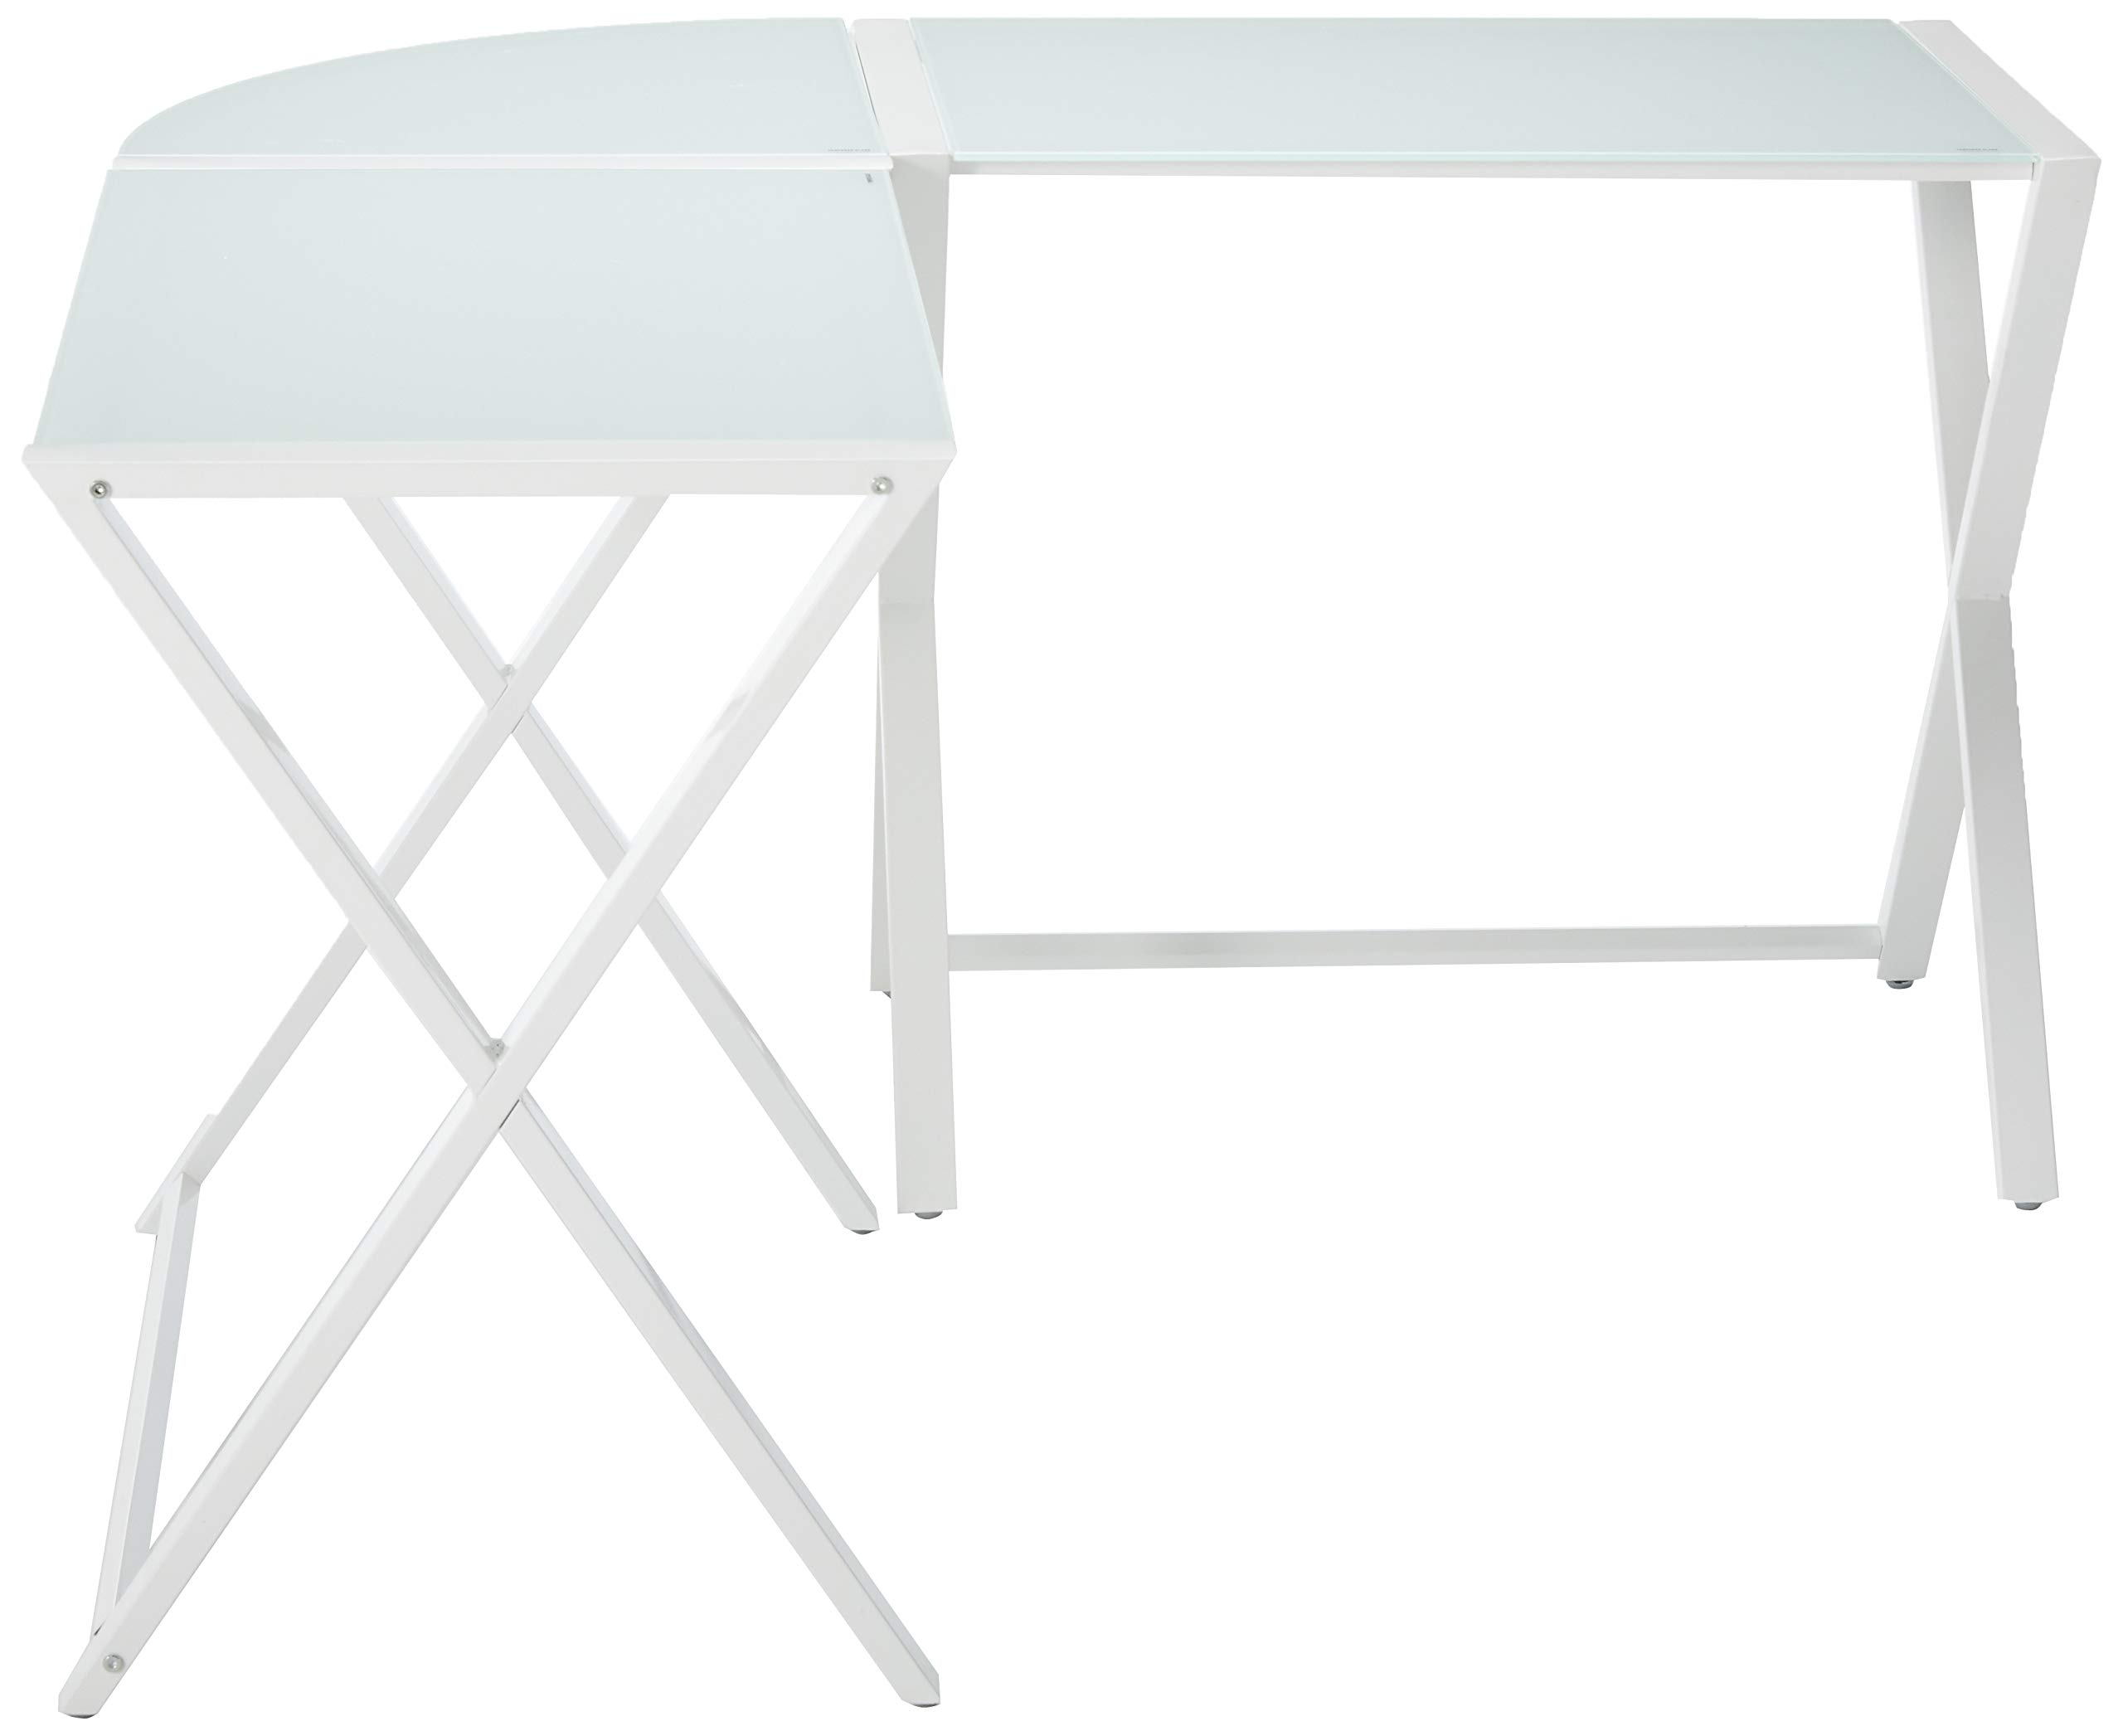 """Walker Edison Modern Corner L Shaped Glass Computer Writing Gaming Gamer Command Center Workstation Desk Home Office, 51 Inch, White - Dimensions: 29"""" H x 51"""" L x 20"""" W Accommodates multiple monitors Sleek tempered glass and metal design - writing-desks, living-room-furniture, living-room - 615A6RufTFL -"""